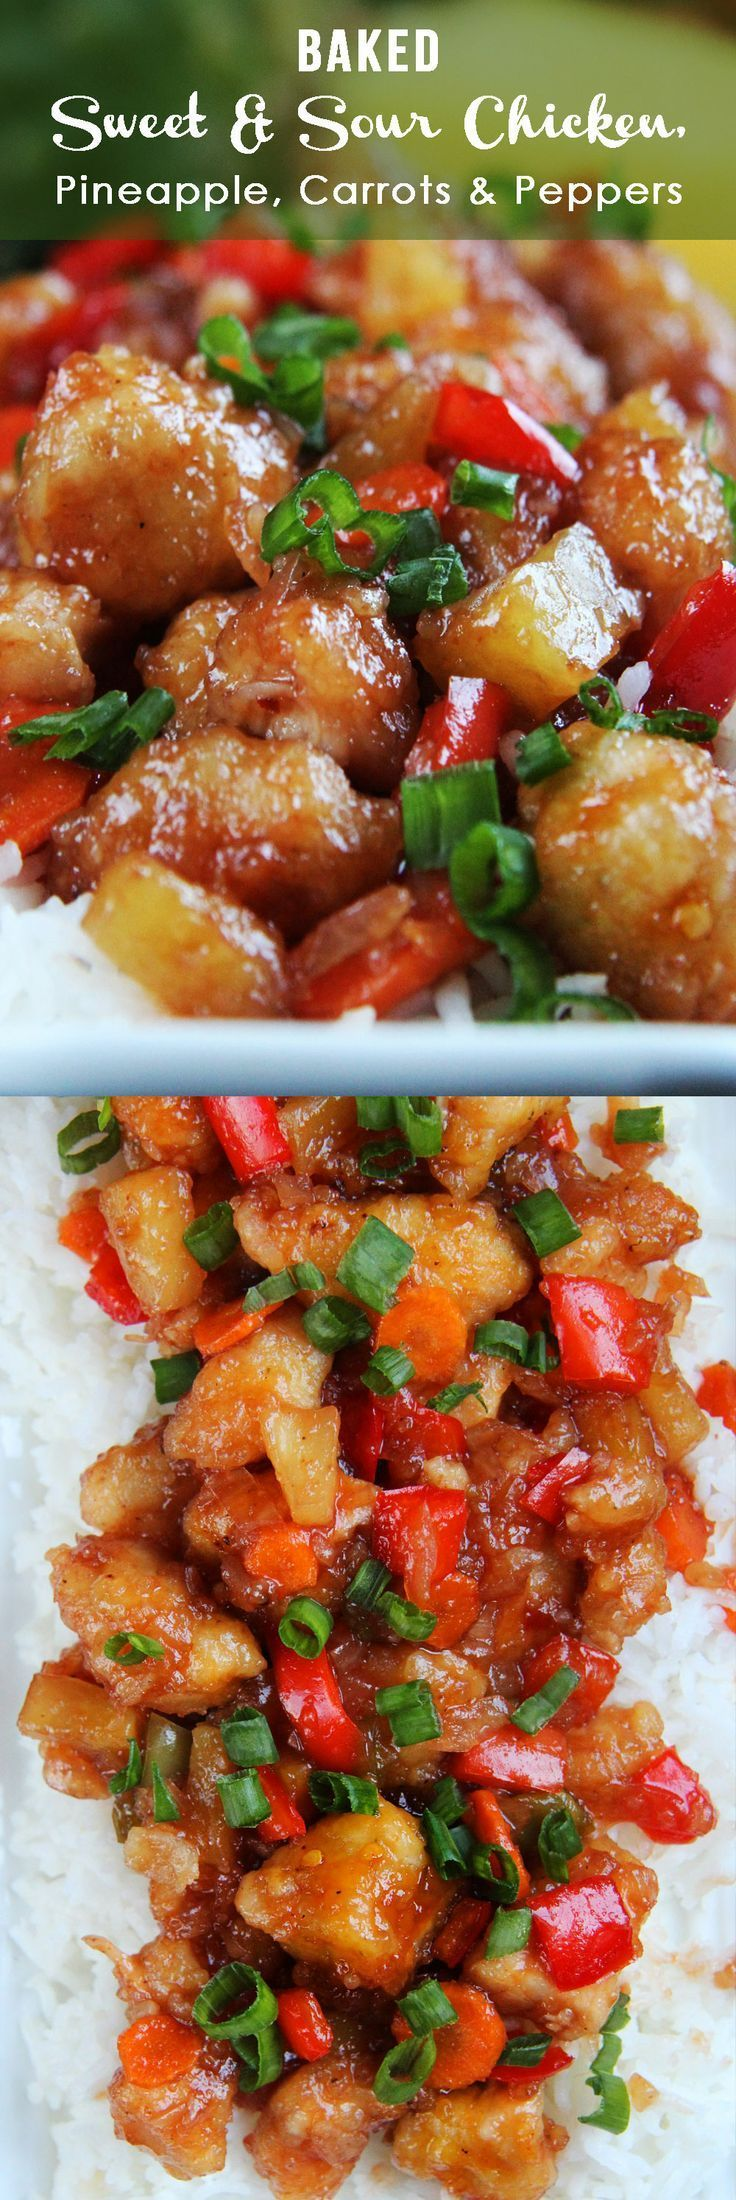 The BEST Sweet and Sour chicken - takeout OR homemade - I have ever had in my entire life! It is also baked with pineapple, carrots, onions and bell peppers all in ONE BAKING DISH! No need to stir fry extra veggies! | Carlsbad Cravings